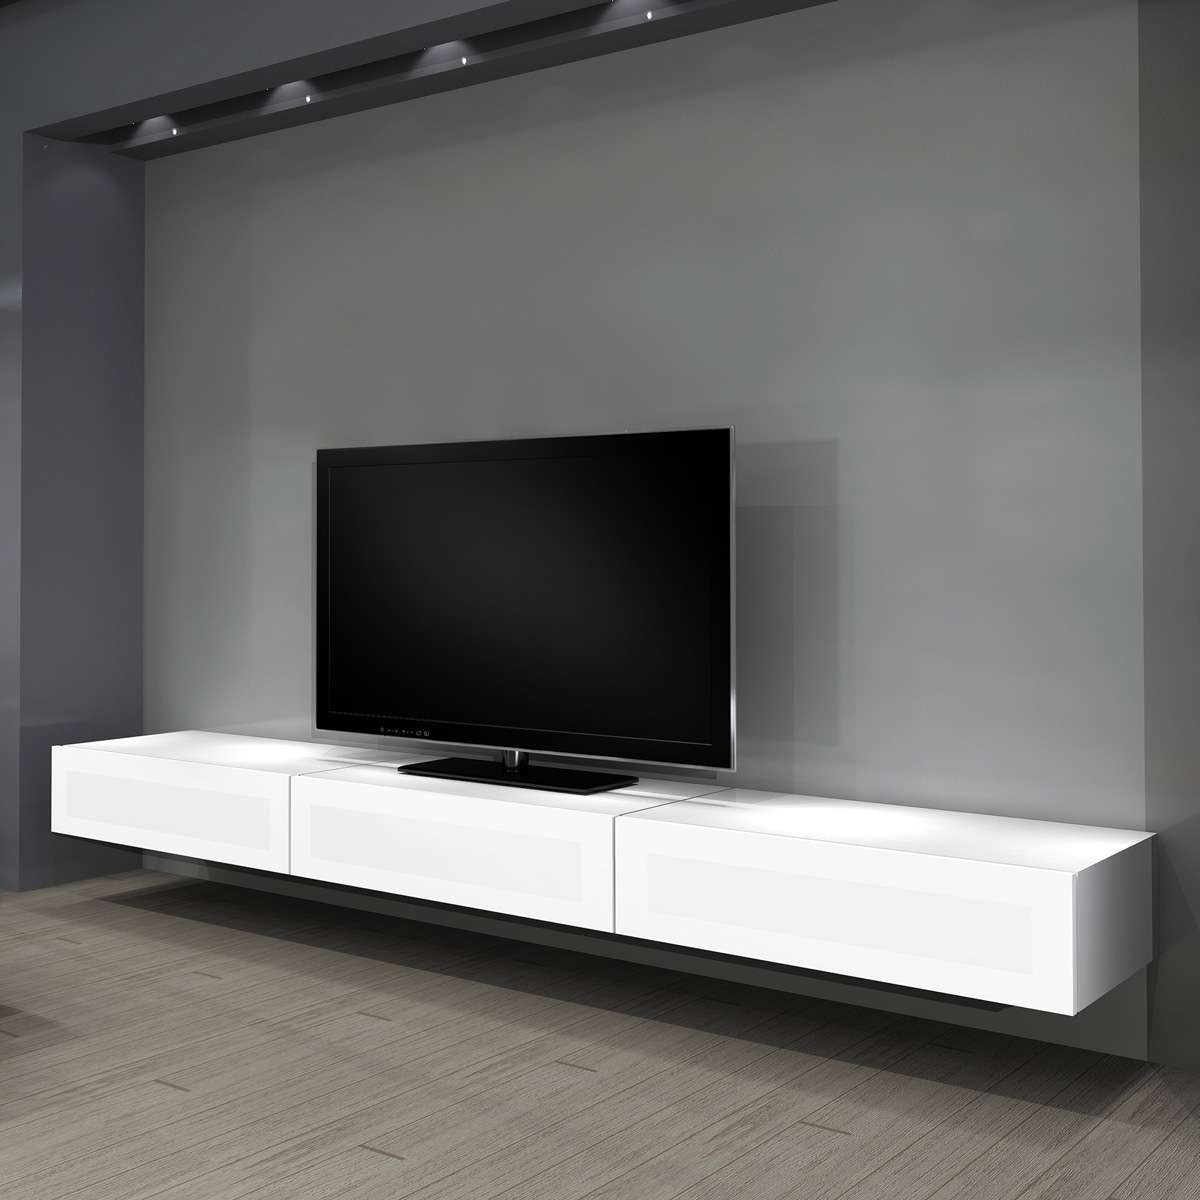 Furniture: White Floated Ikea Modern Tv Stands With Slim Tv Udner With Regard To Slim Tv Stands (View 7 of 20)